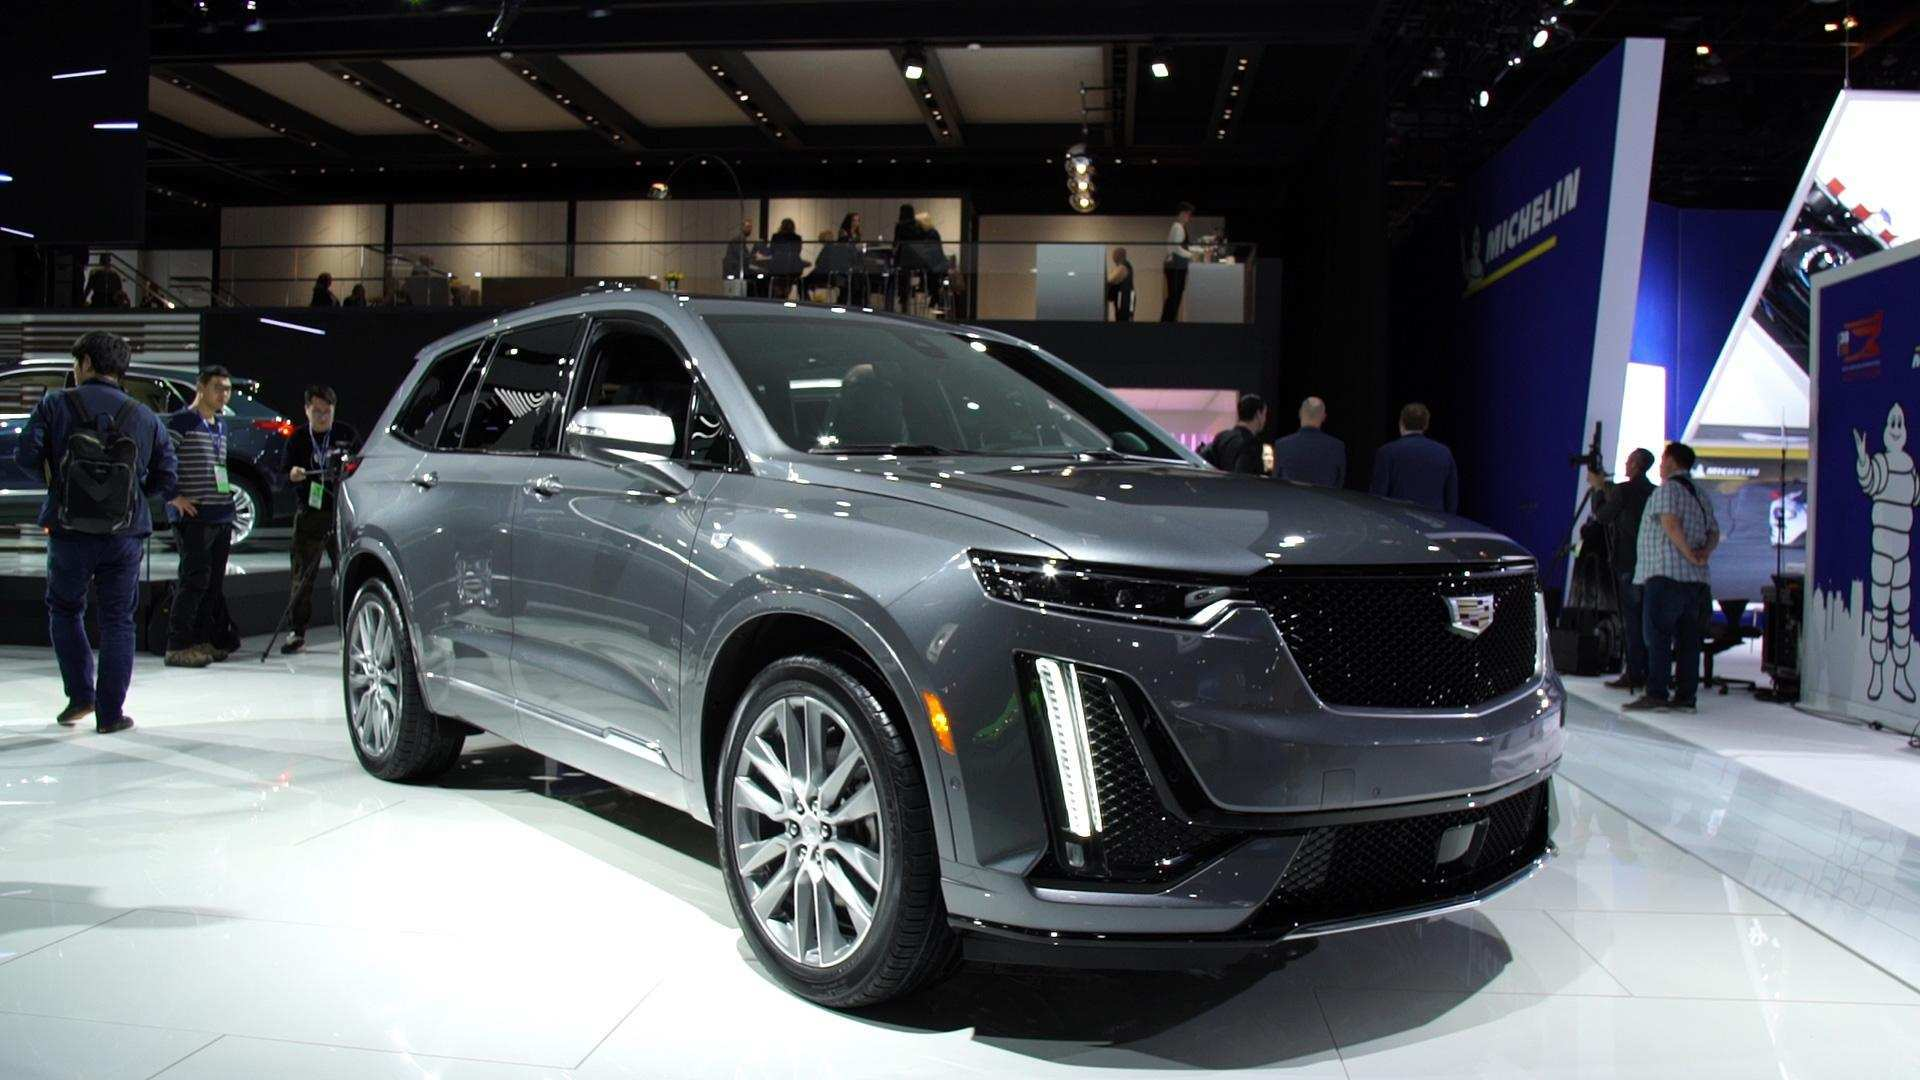 39 Best 2020 Cadillac Xt6 Interior Colors Picture